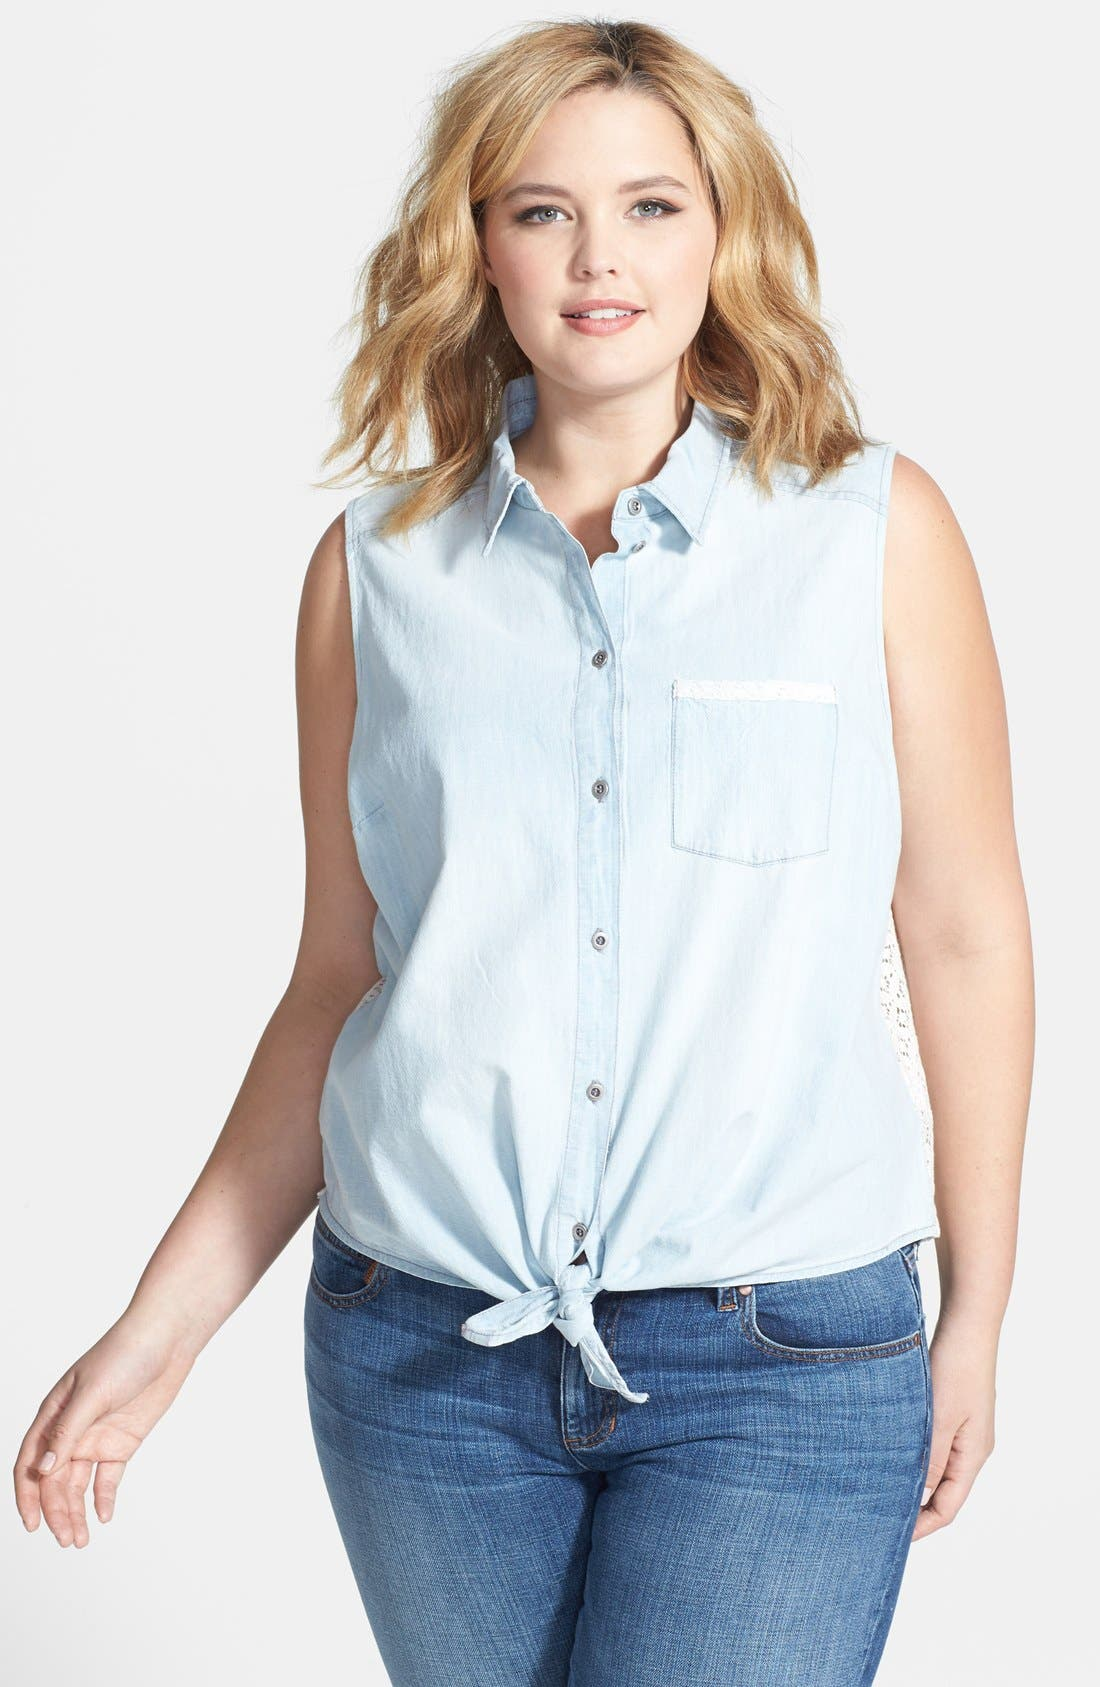 Alternate Image 1 Selected - Jessica Simpson 'Soul' Sleeveless Tie Front Mixed Media Shirt (Plus Size)